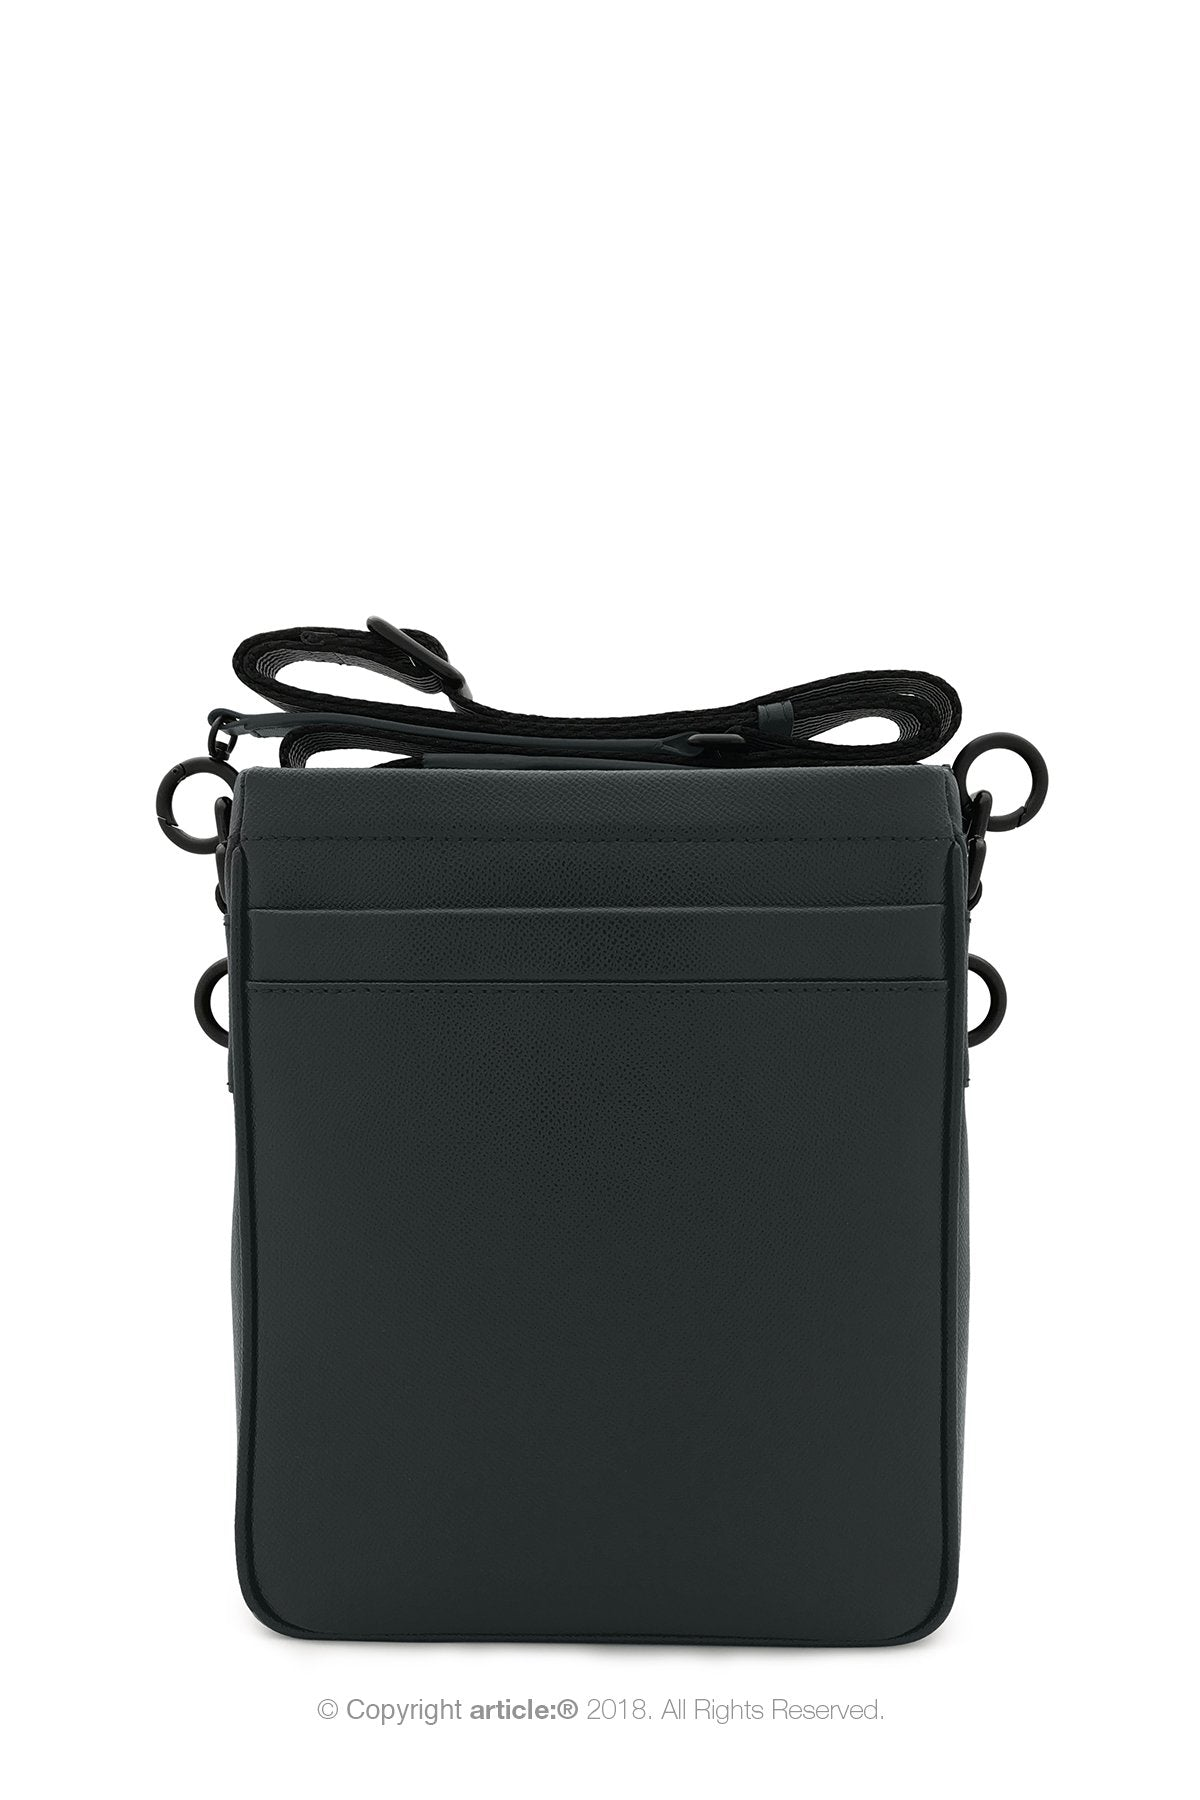 article: #165 Bag Mini Messenger - Noir